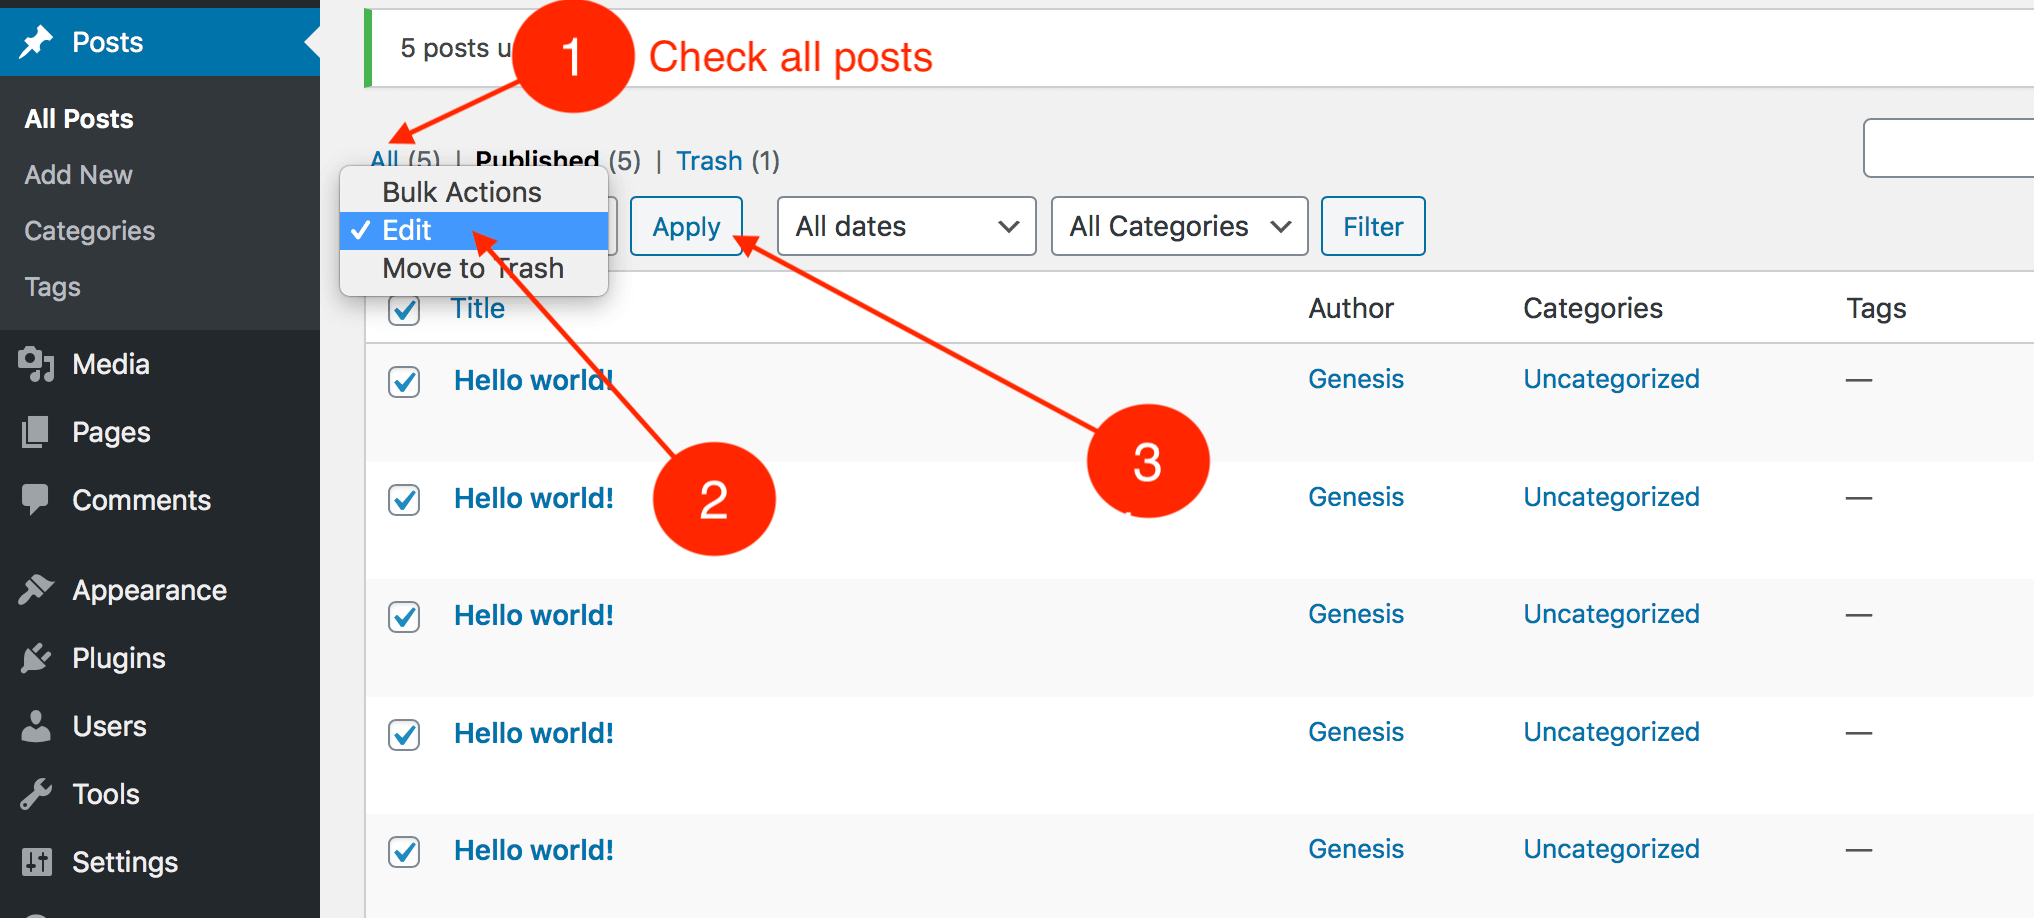 How to check all the wordpress posts